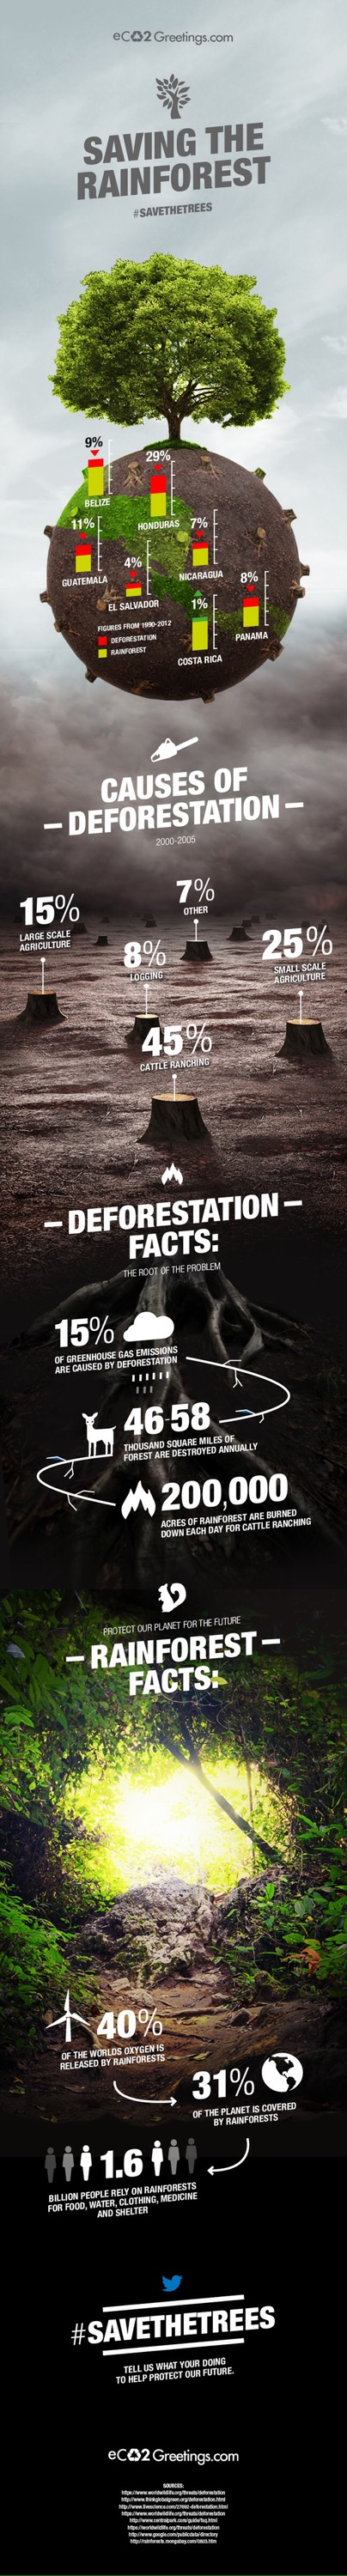 real reasons,deforestation, amazon, beef,cattle